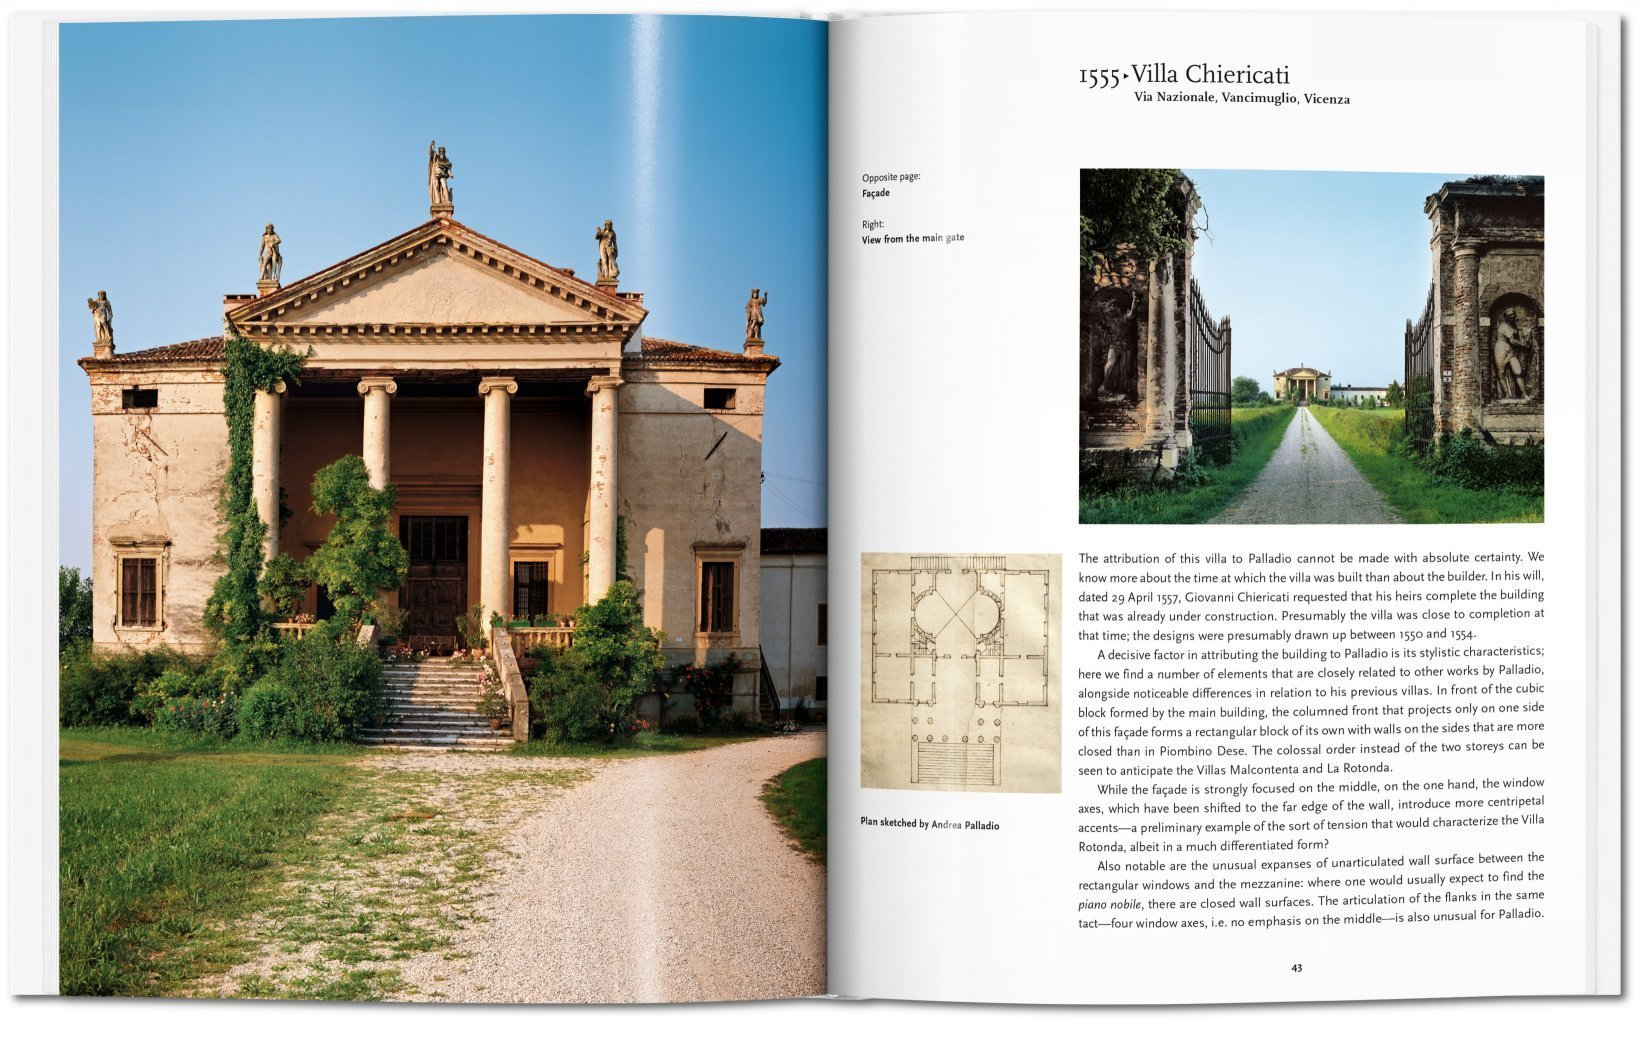 Palladio manfred wundram 9783836550215 amazon books fandeluxe Image collections